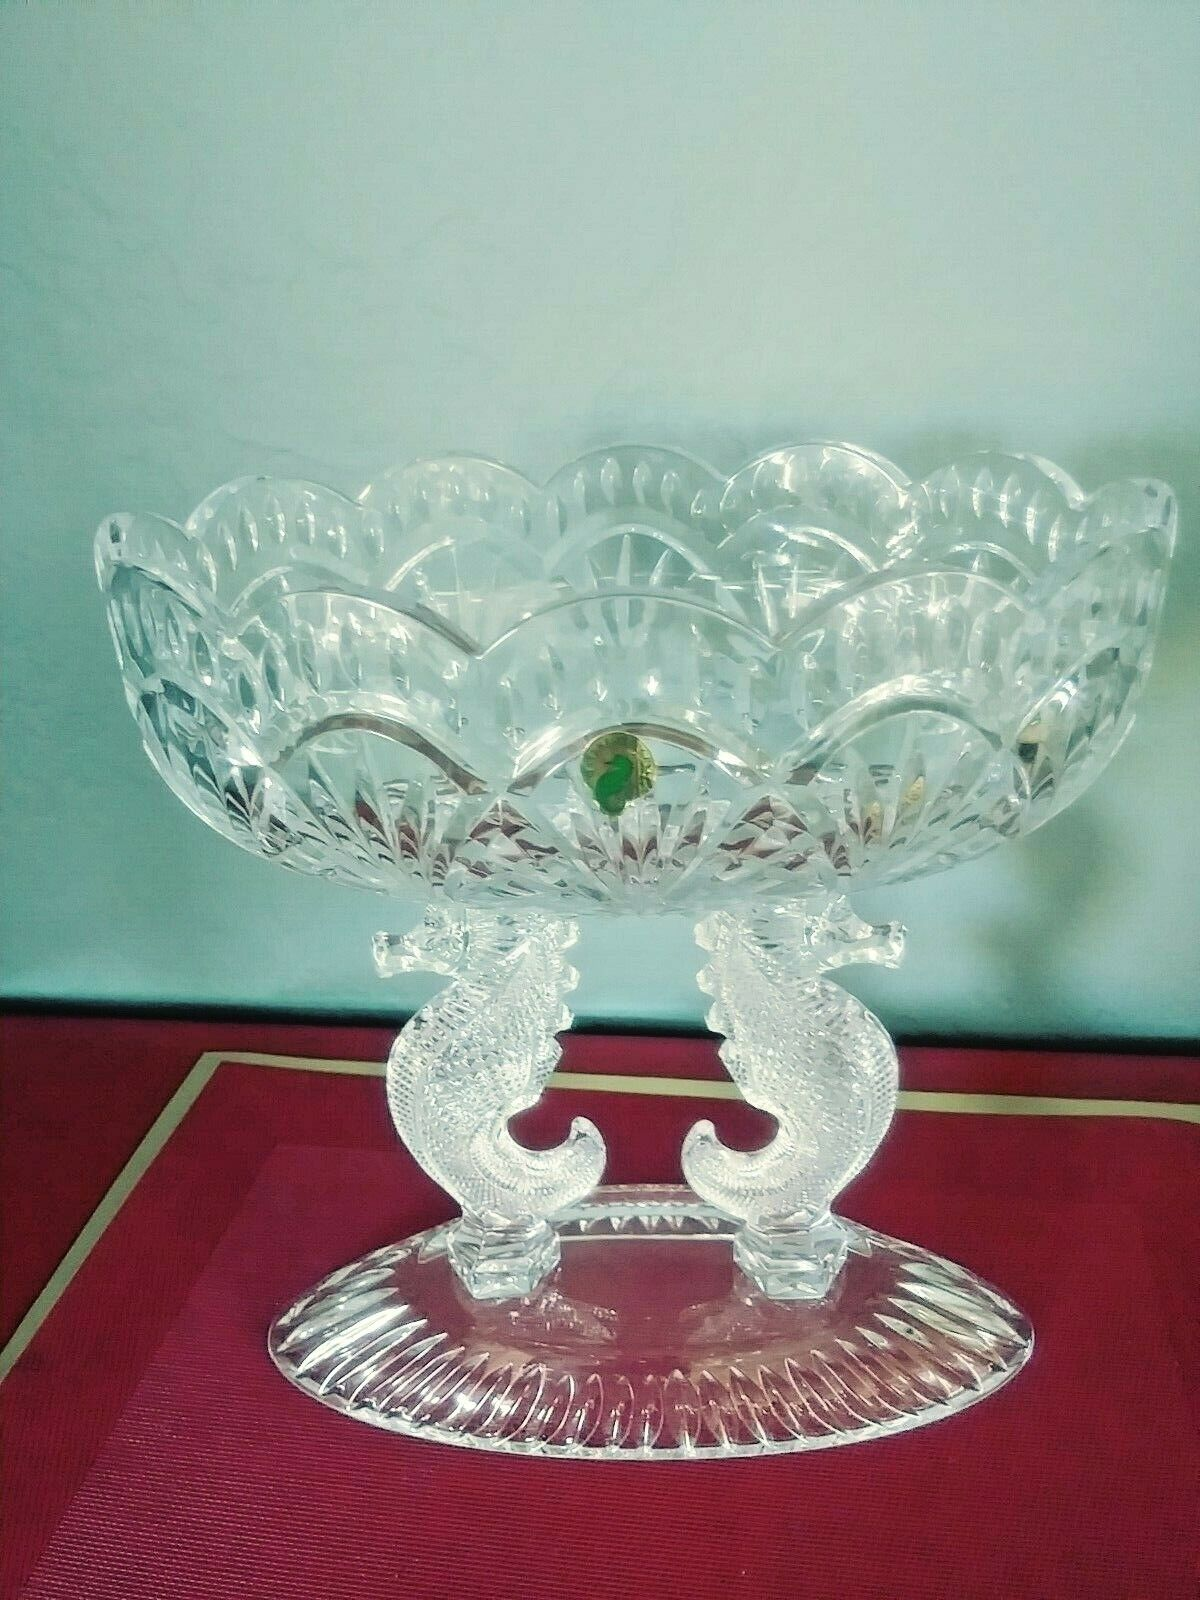 Waterford Crystal Double Seahorse Pedestal Oval Bowl NEW IN BOX - $975.00